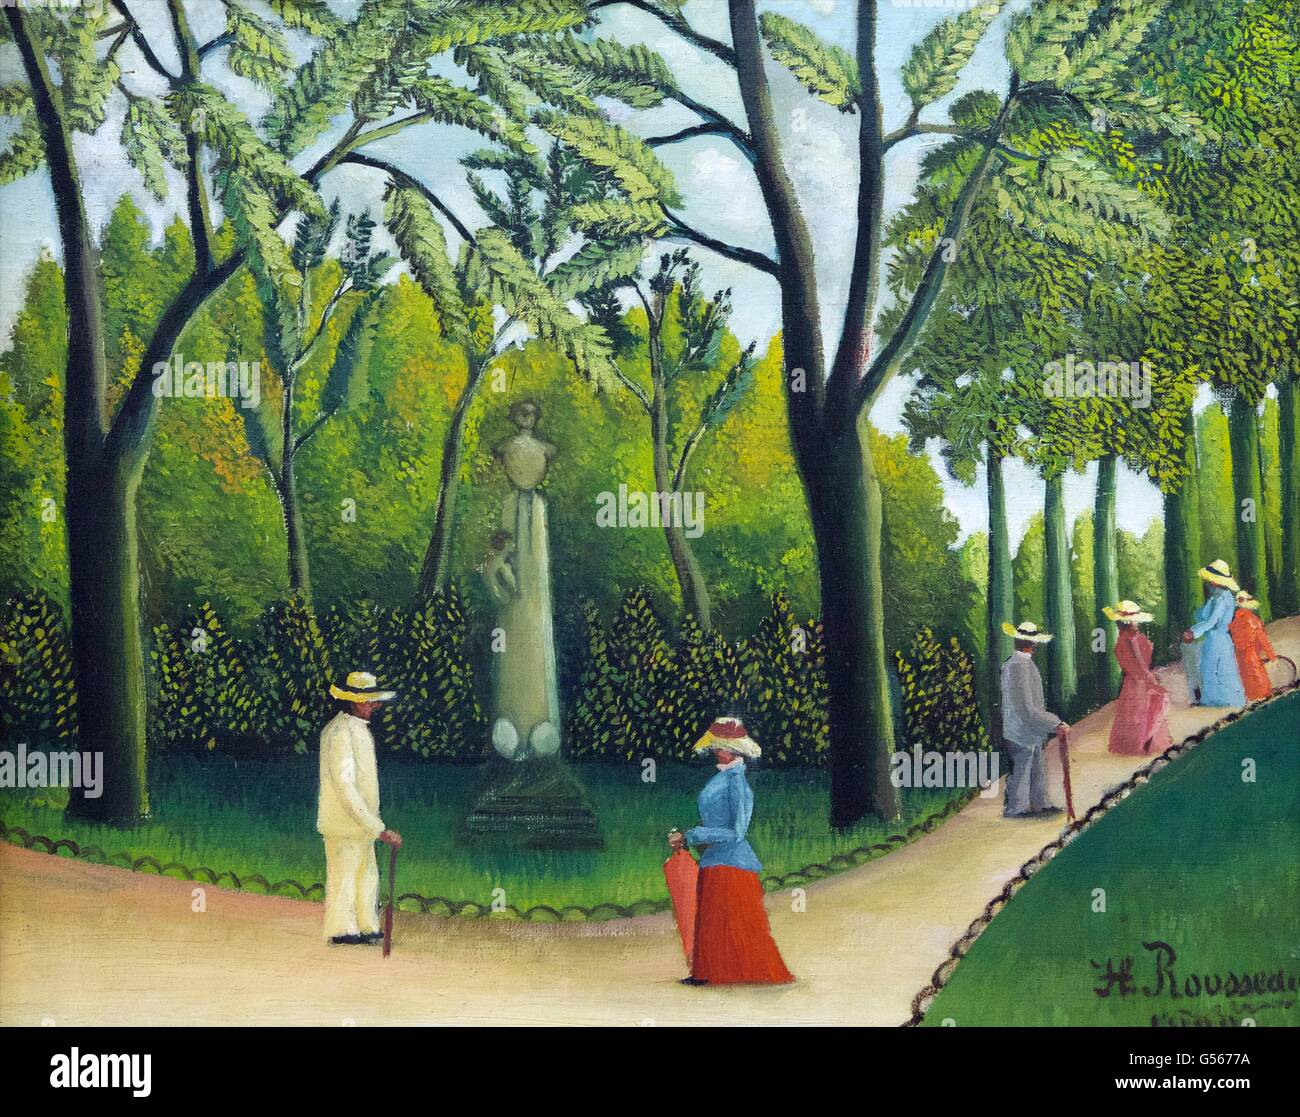 Luxemburg Garden, Monument to Chopin, by Henri Rousseau, 1909, State Hermitage Museum, Saint Petersburg, Russia - Stock Image